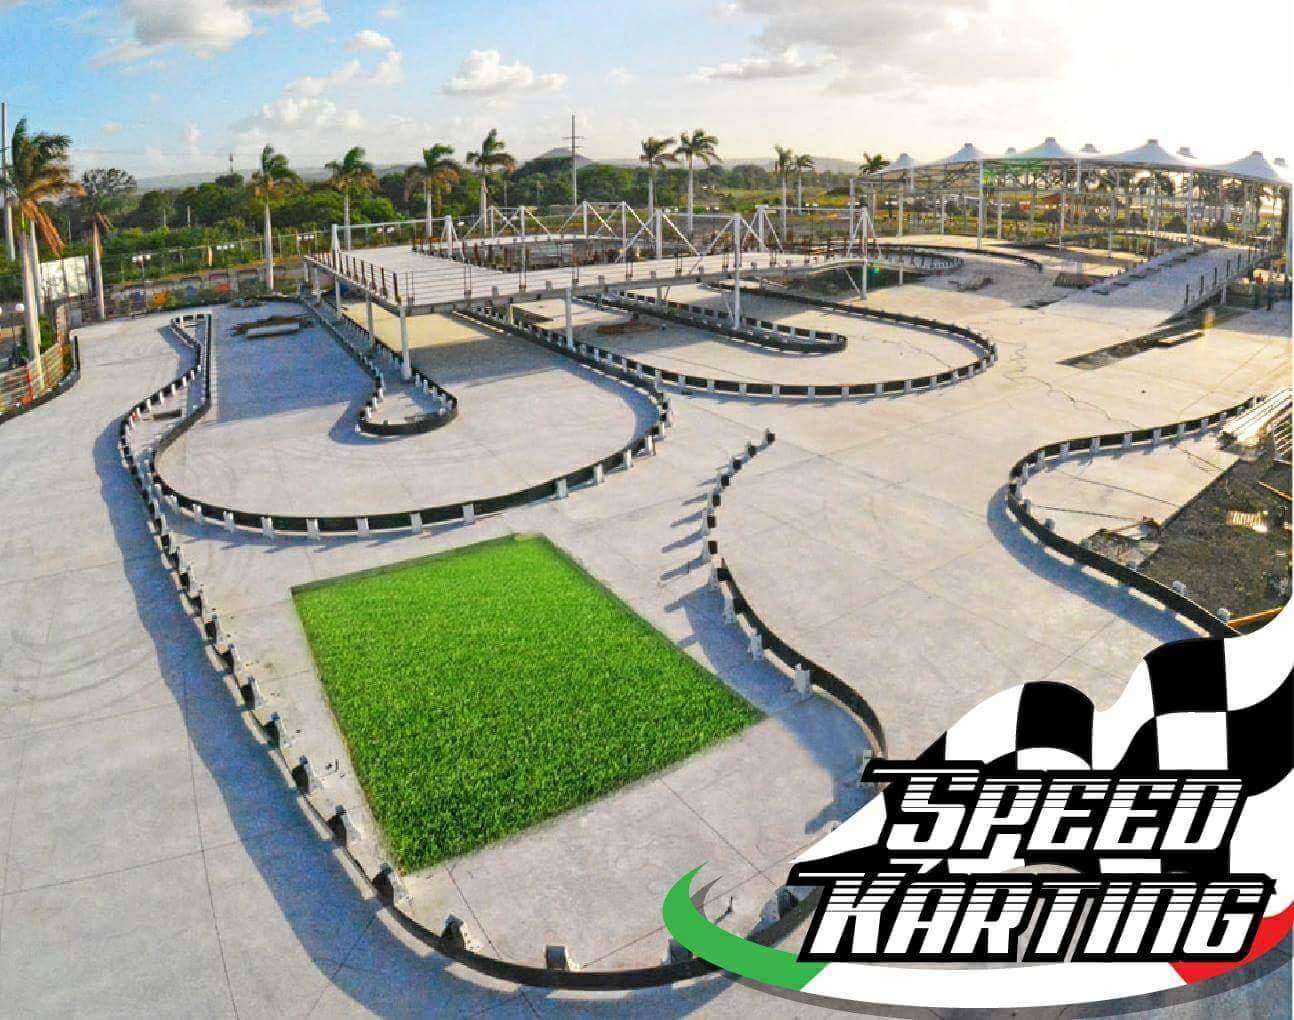 speedkarting